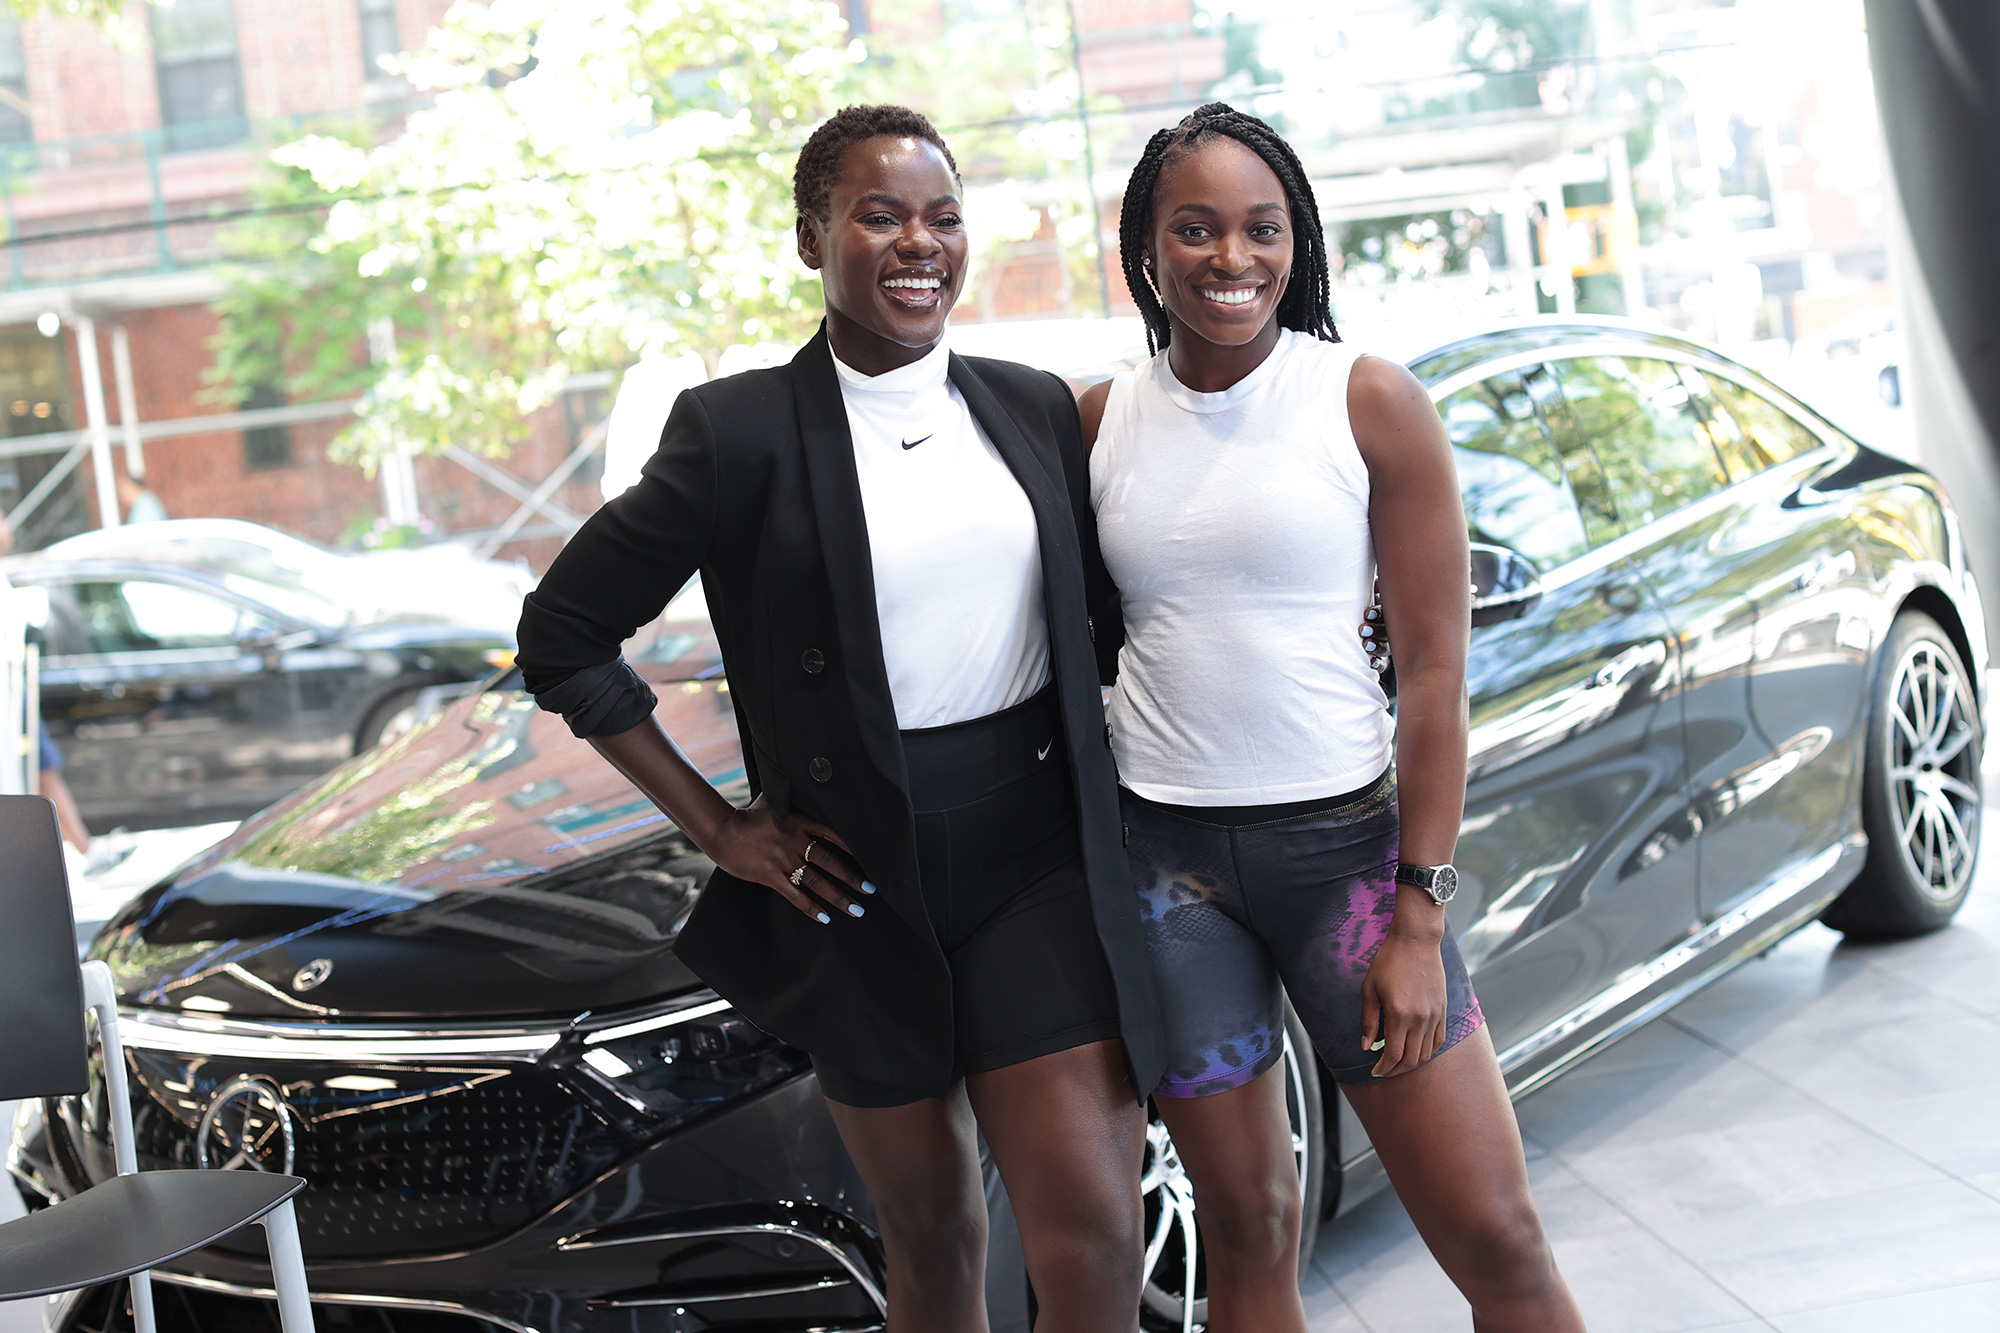 Tunde Oyeneyin and Mercedes-Benz ambassador Sloane Stephens appear at Mercedes-Benz Manhattan to celebrate the new All-Electric EQS Sedan ahead of US Open on August 25, 2021 in New York City